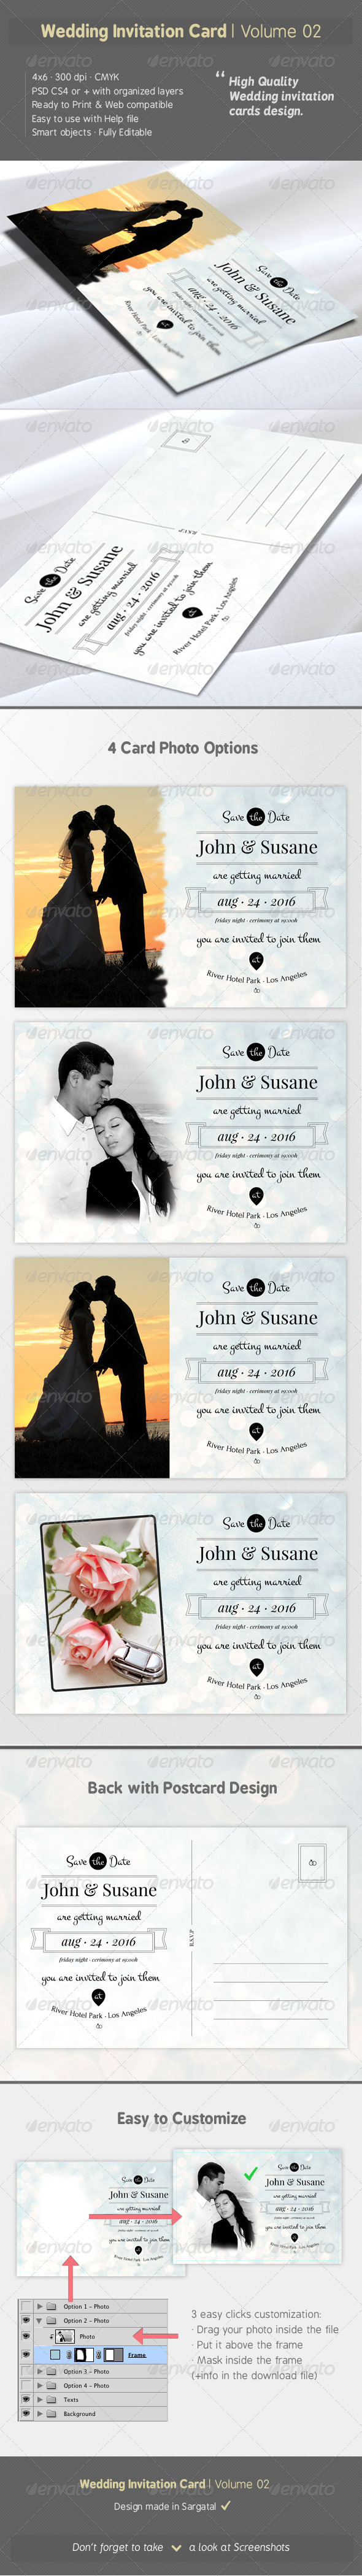 Wedding Invitation Card - Volume 02